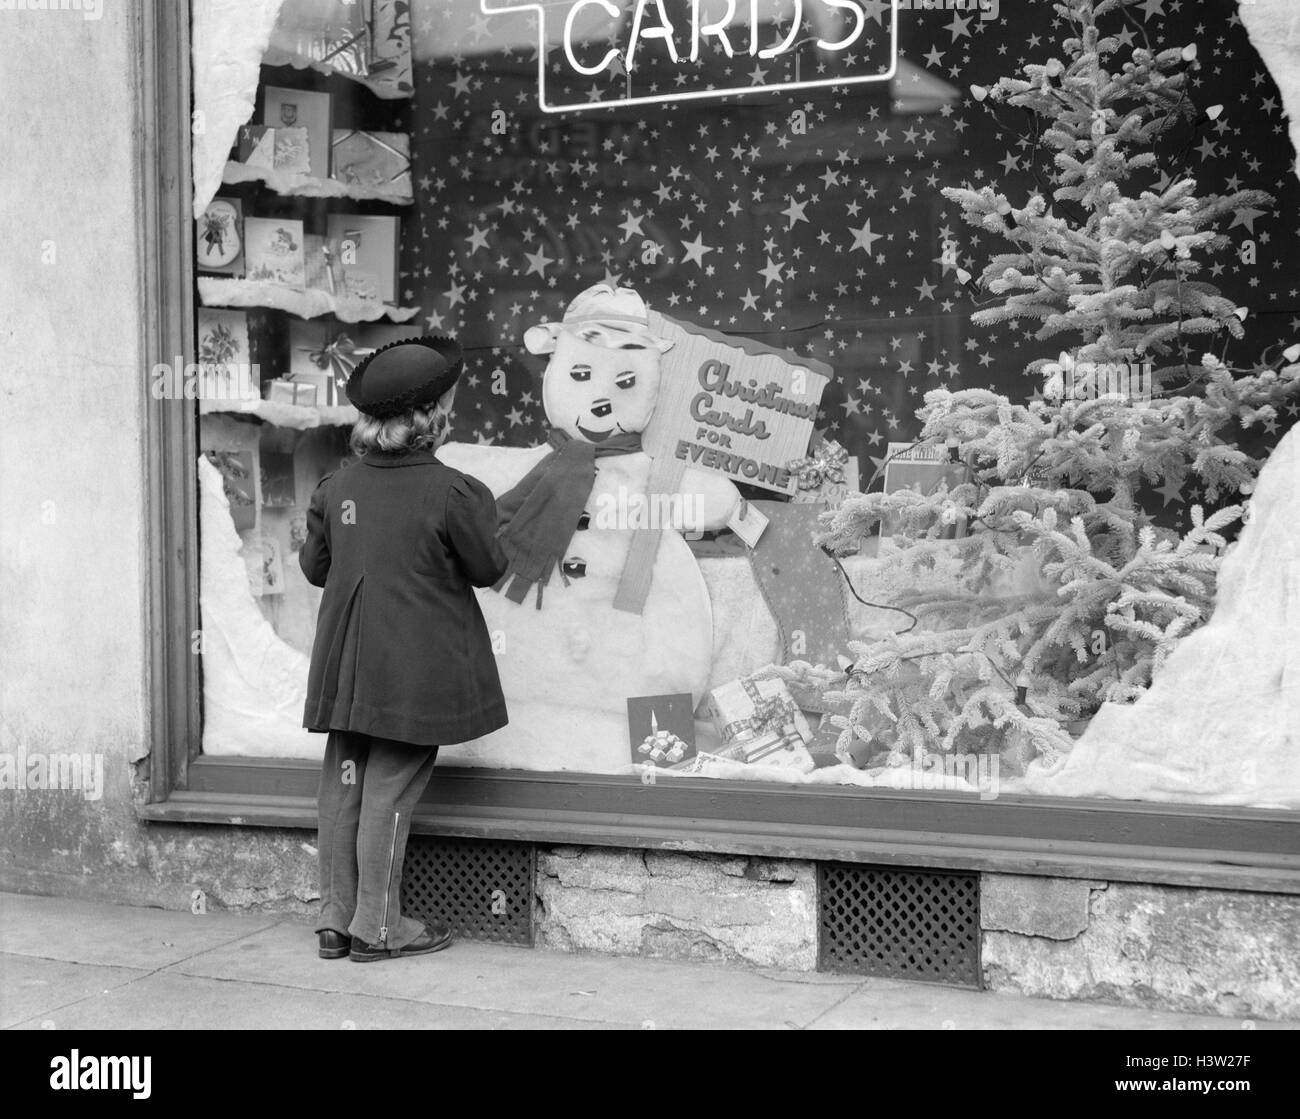 1930s 1940s LITTLE GIRL LOOK INTO CARD SHOP WINDOW WITH CHRISTMAS DECORATIONS AND SNOWMAN DISPLAY